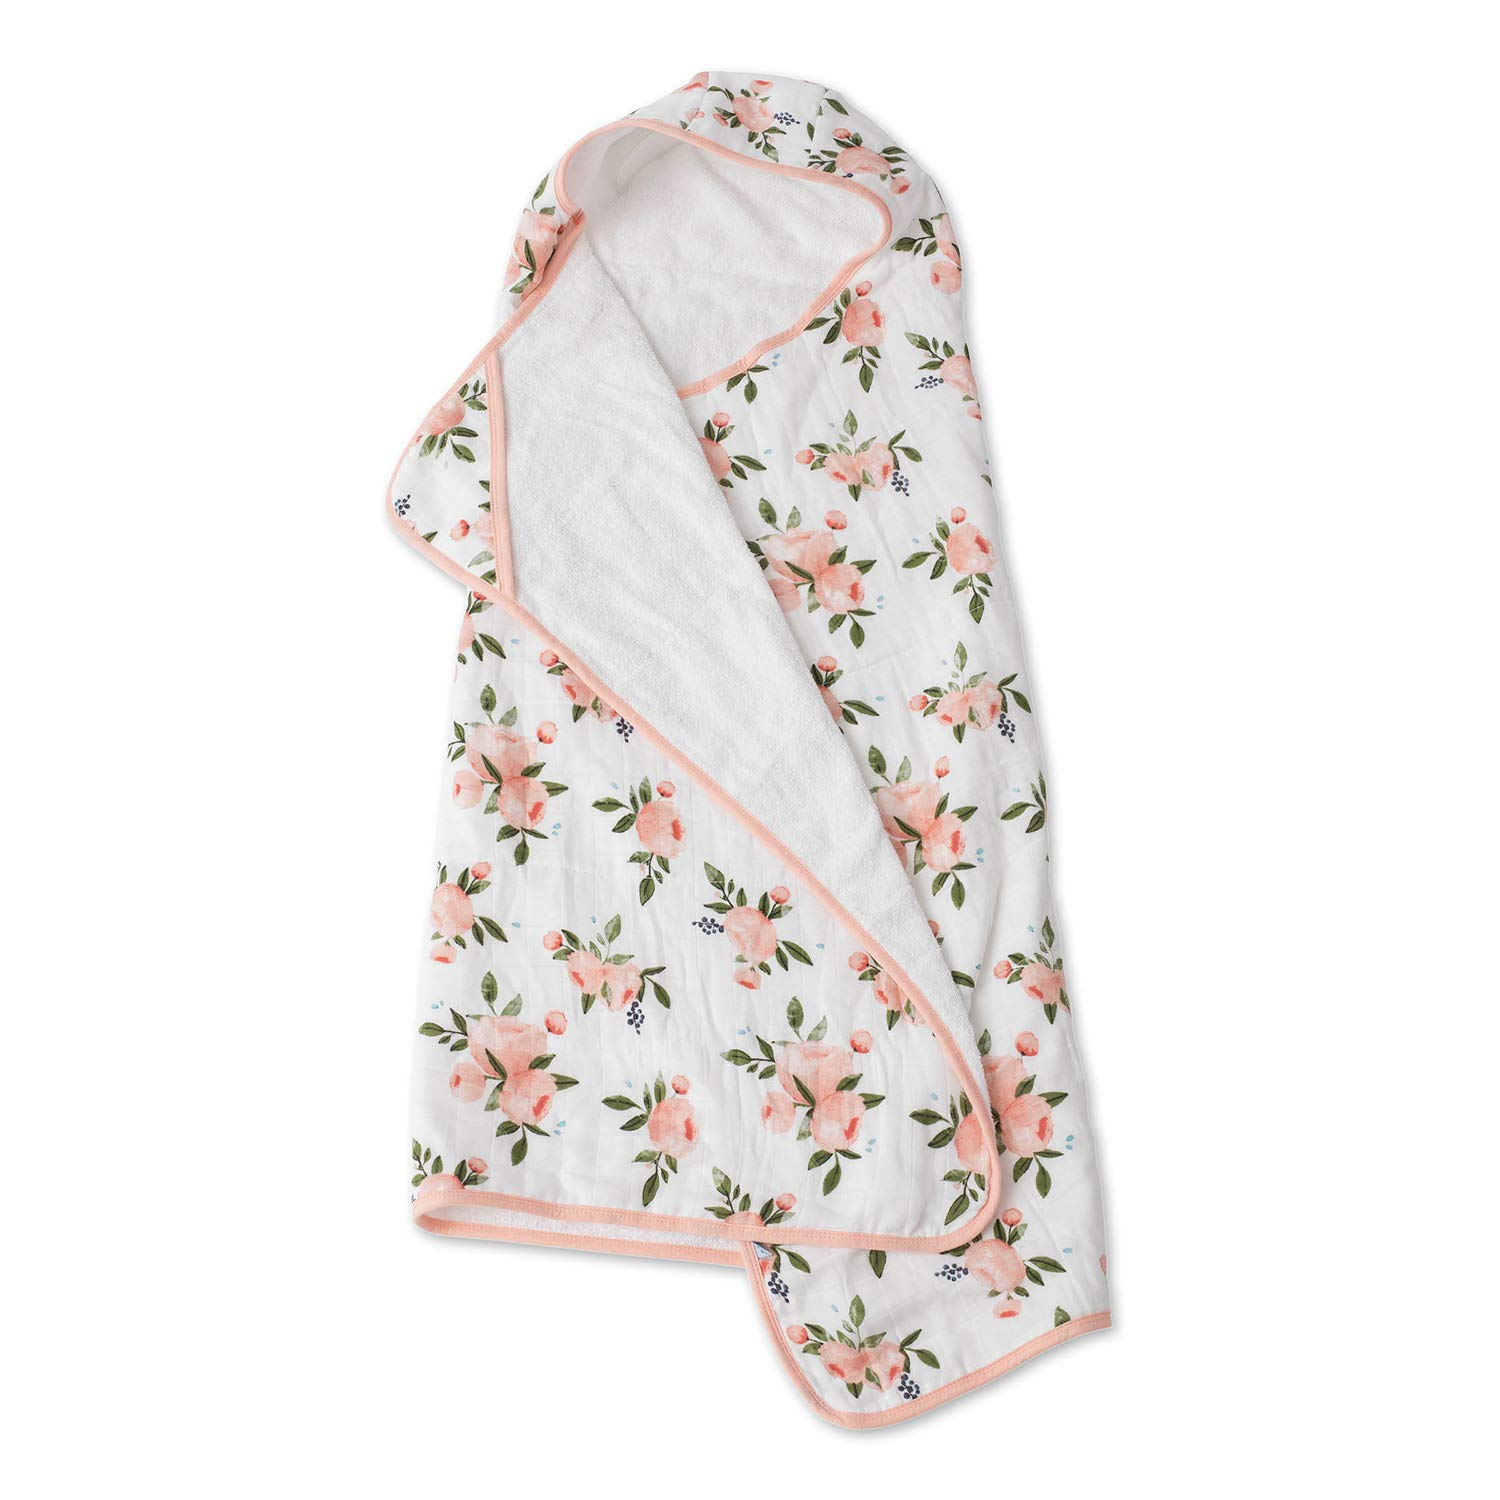 Little Unicorn Large Cotton Hooded Towel - Watercolor Roses by Little Unicorn